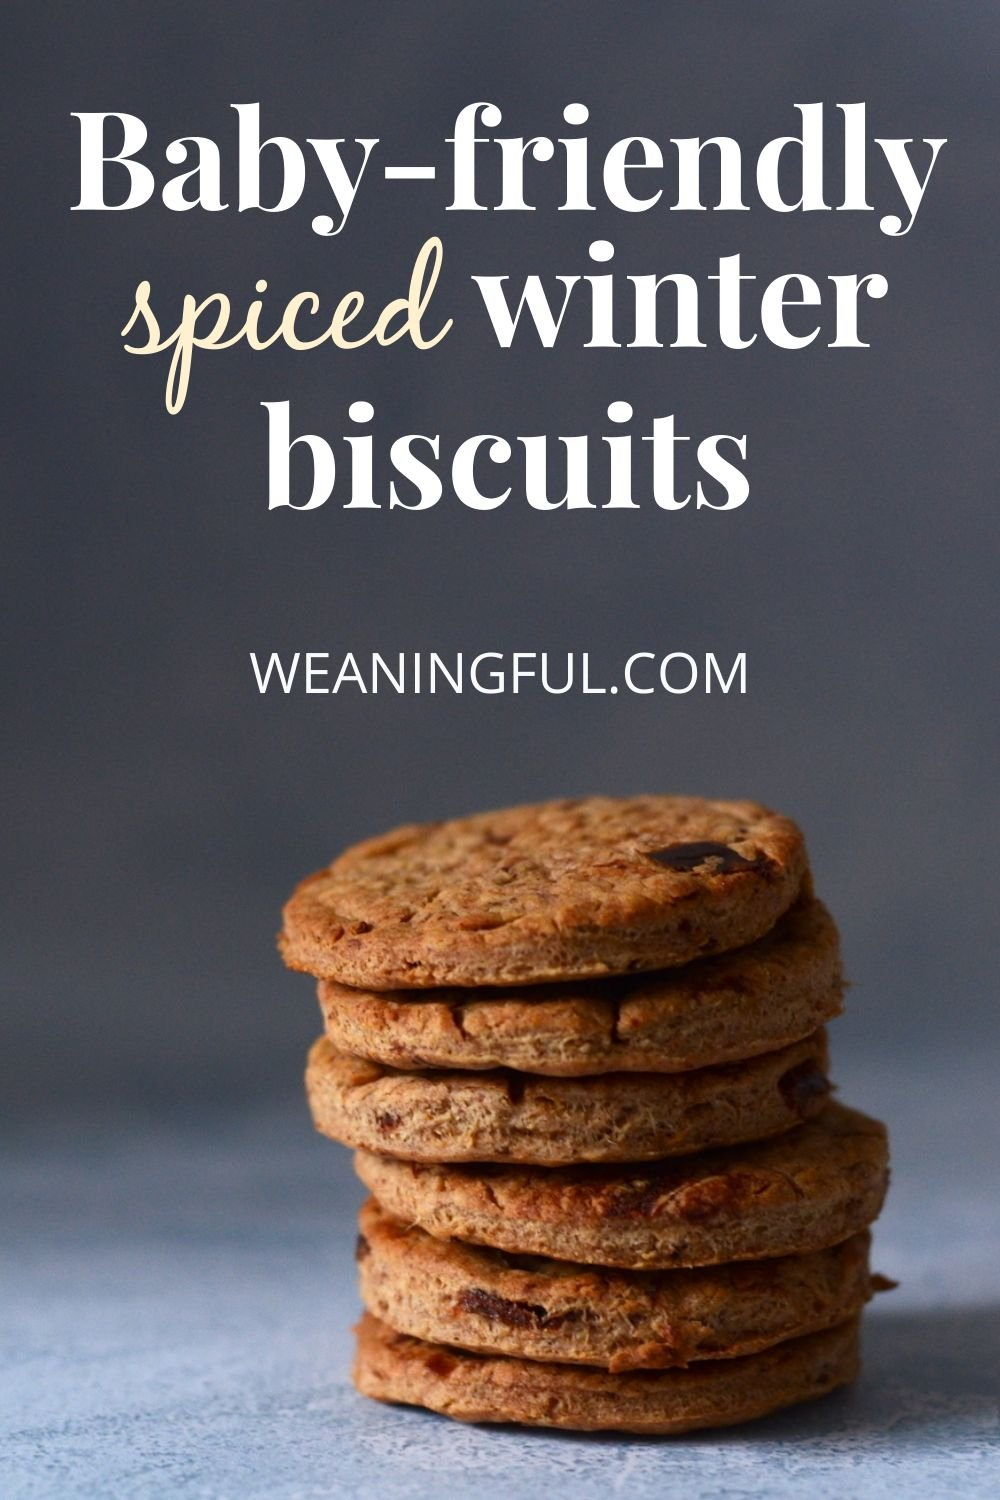 These baby-friendly spiced winter biscuits are a great alternative to gingerbread and sugar-free too. You can make these with your kids and enjoy eating them together as Christmas cookies why not?